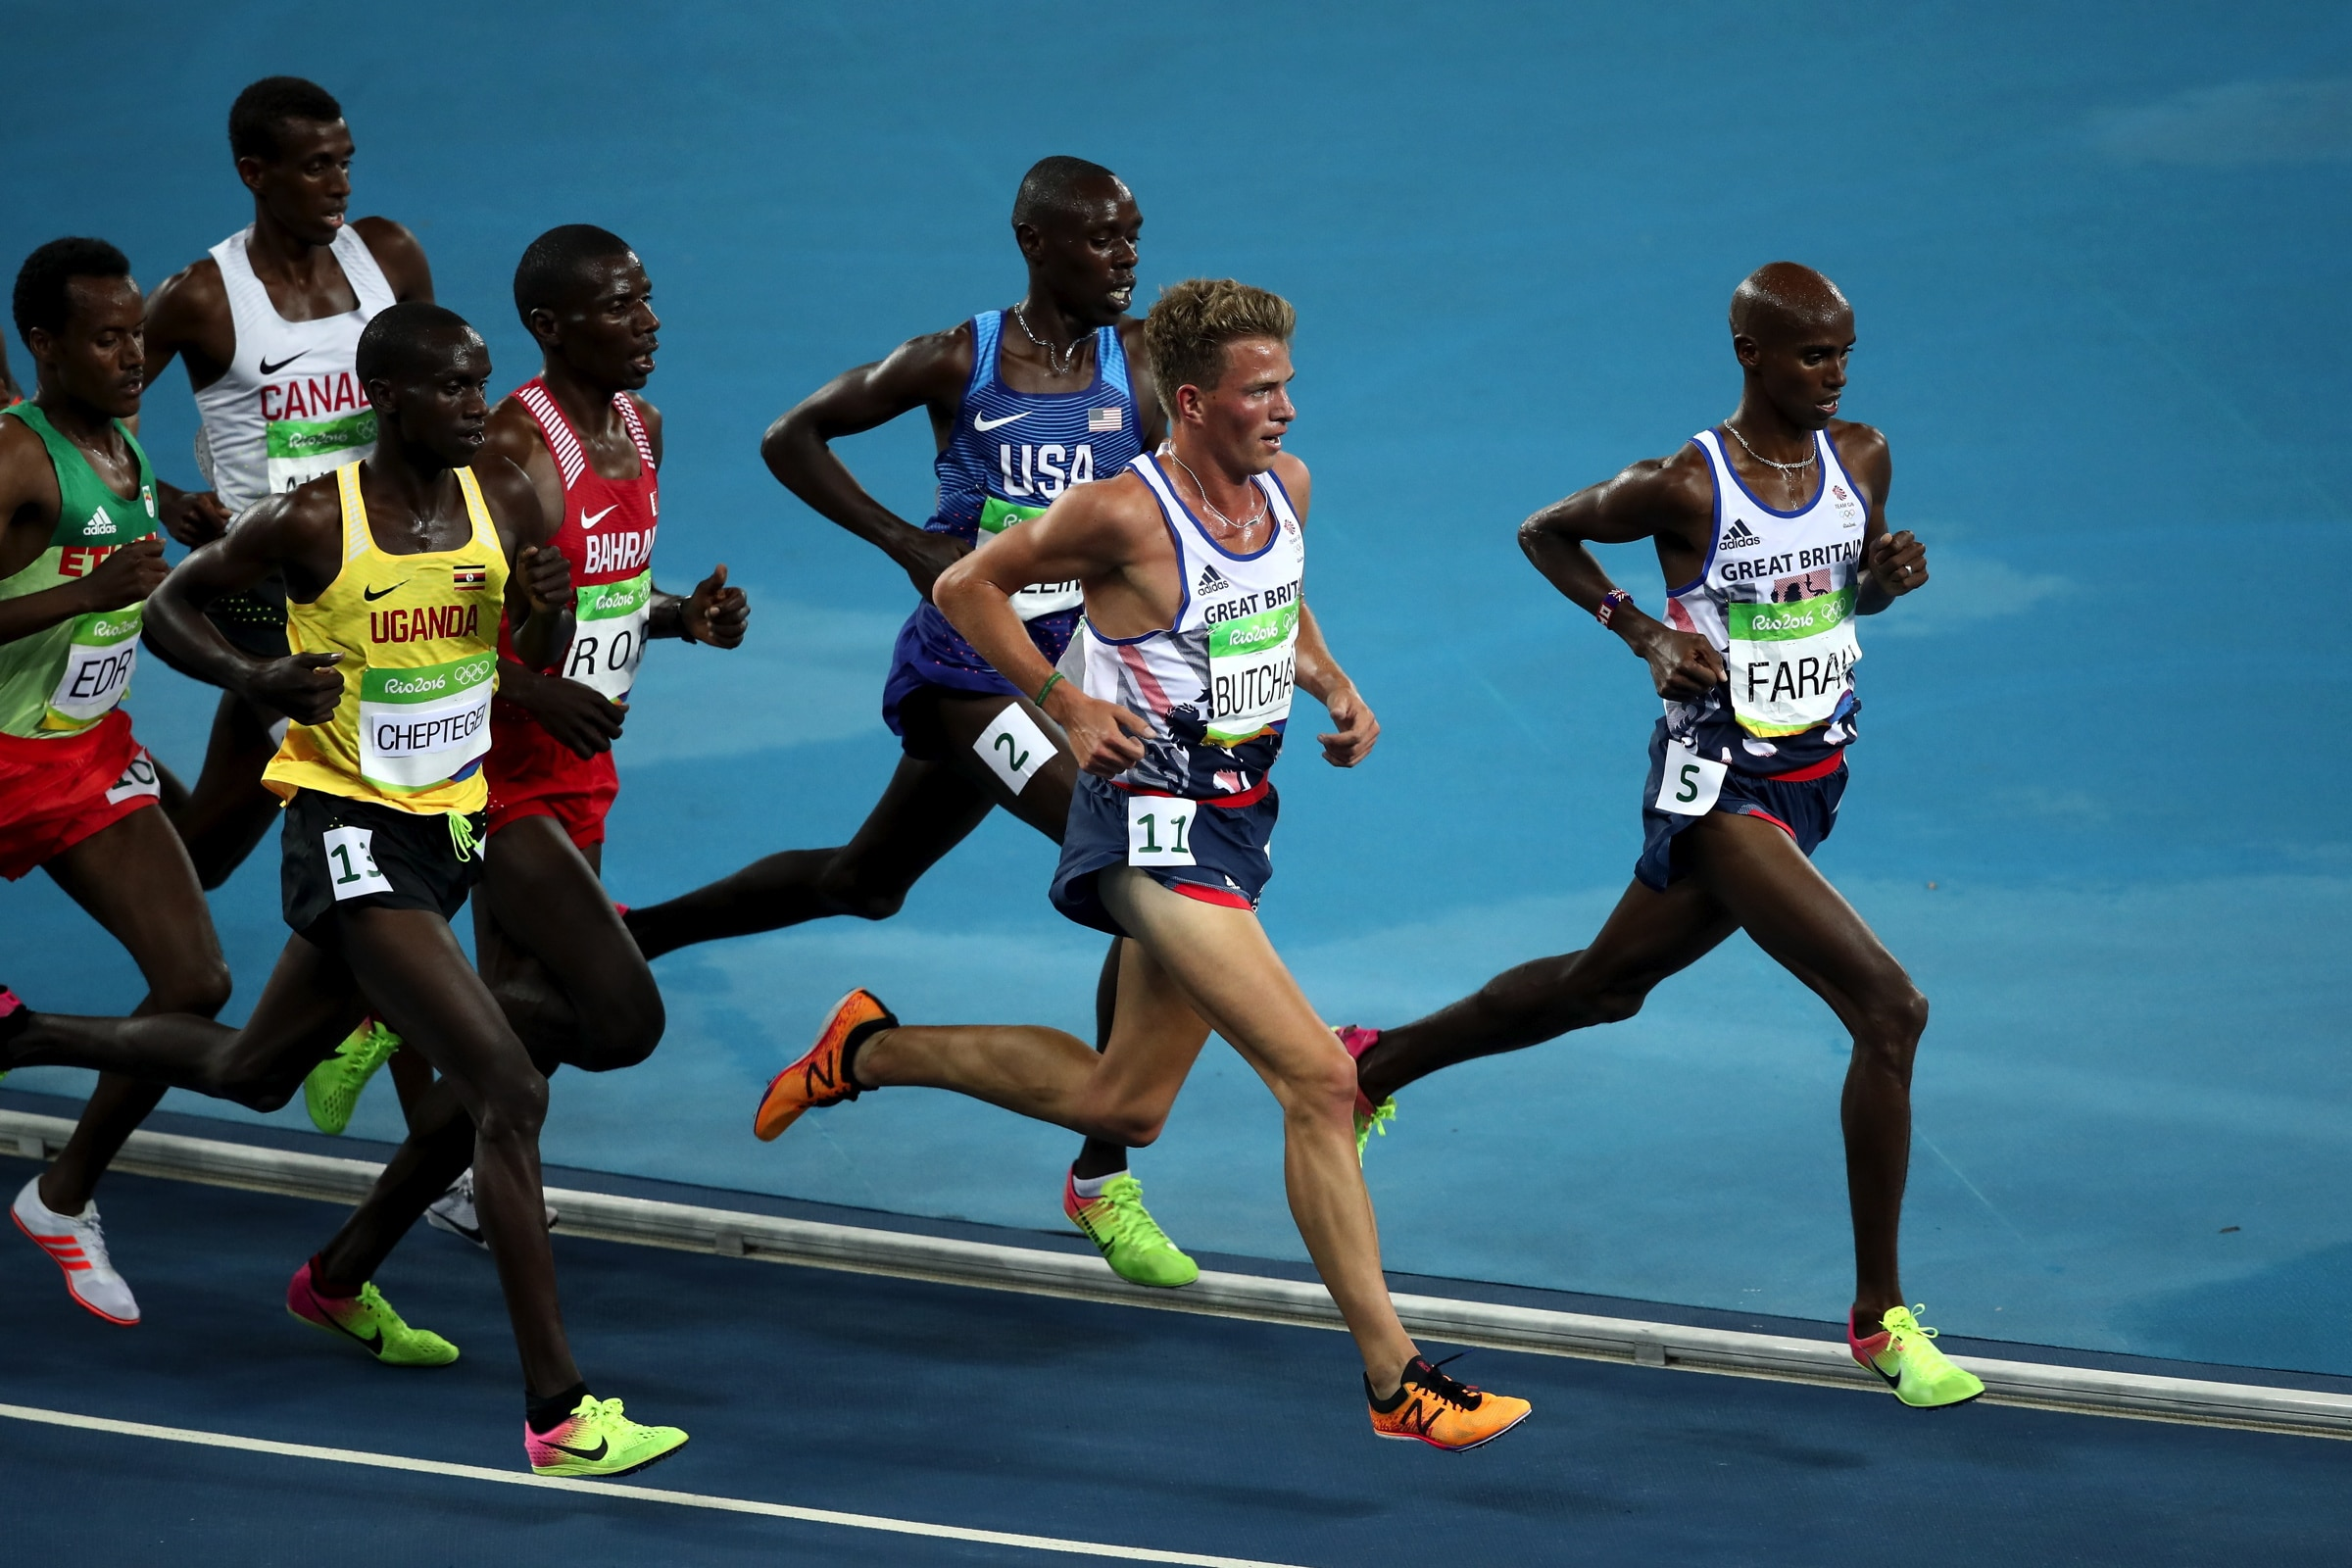 Athletics - 5000m Men